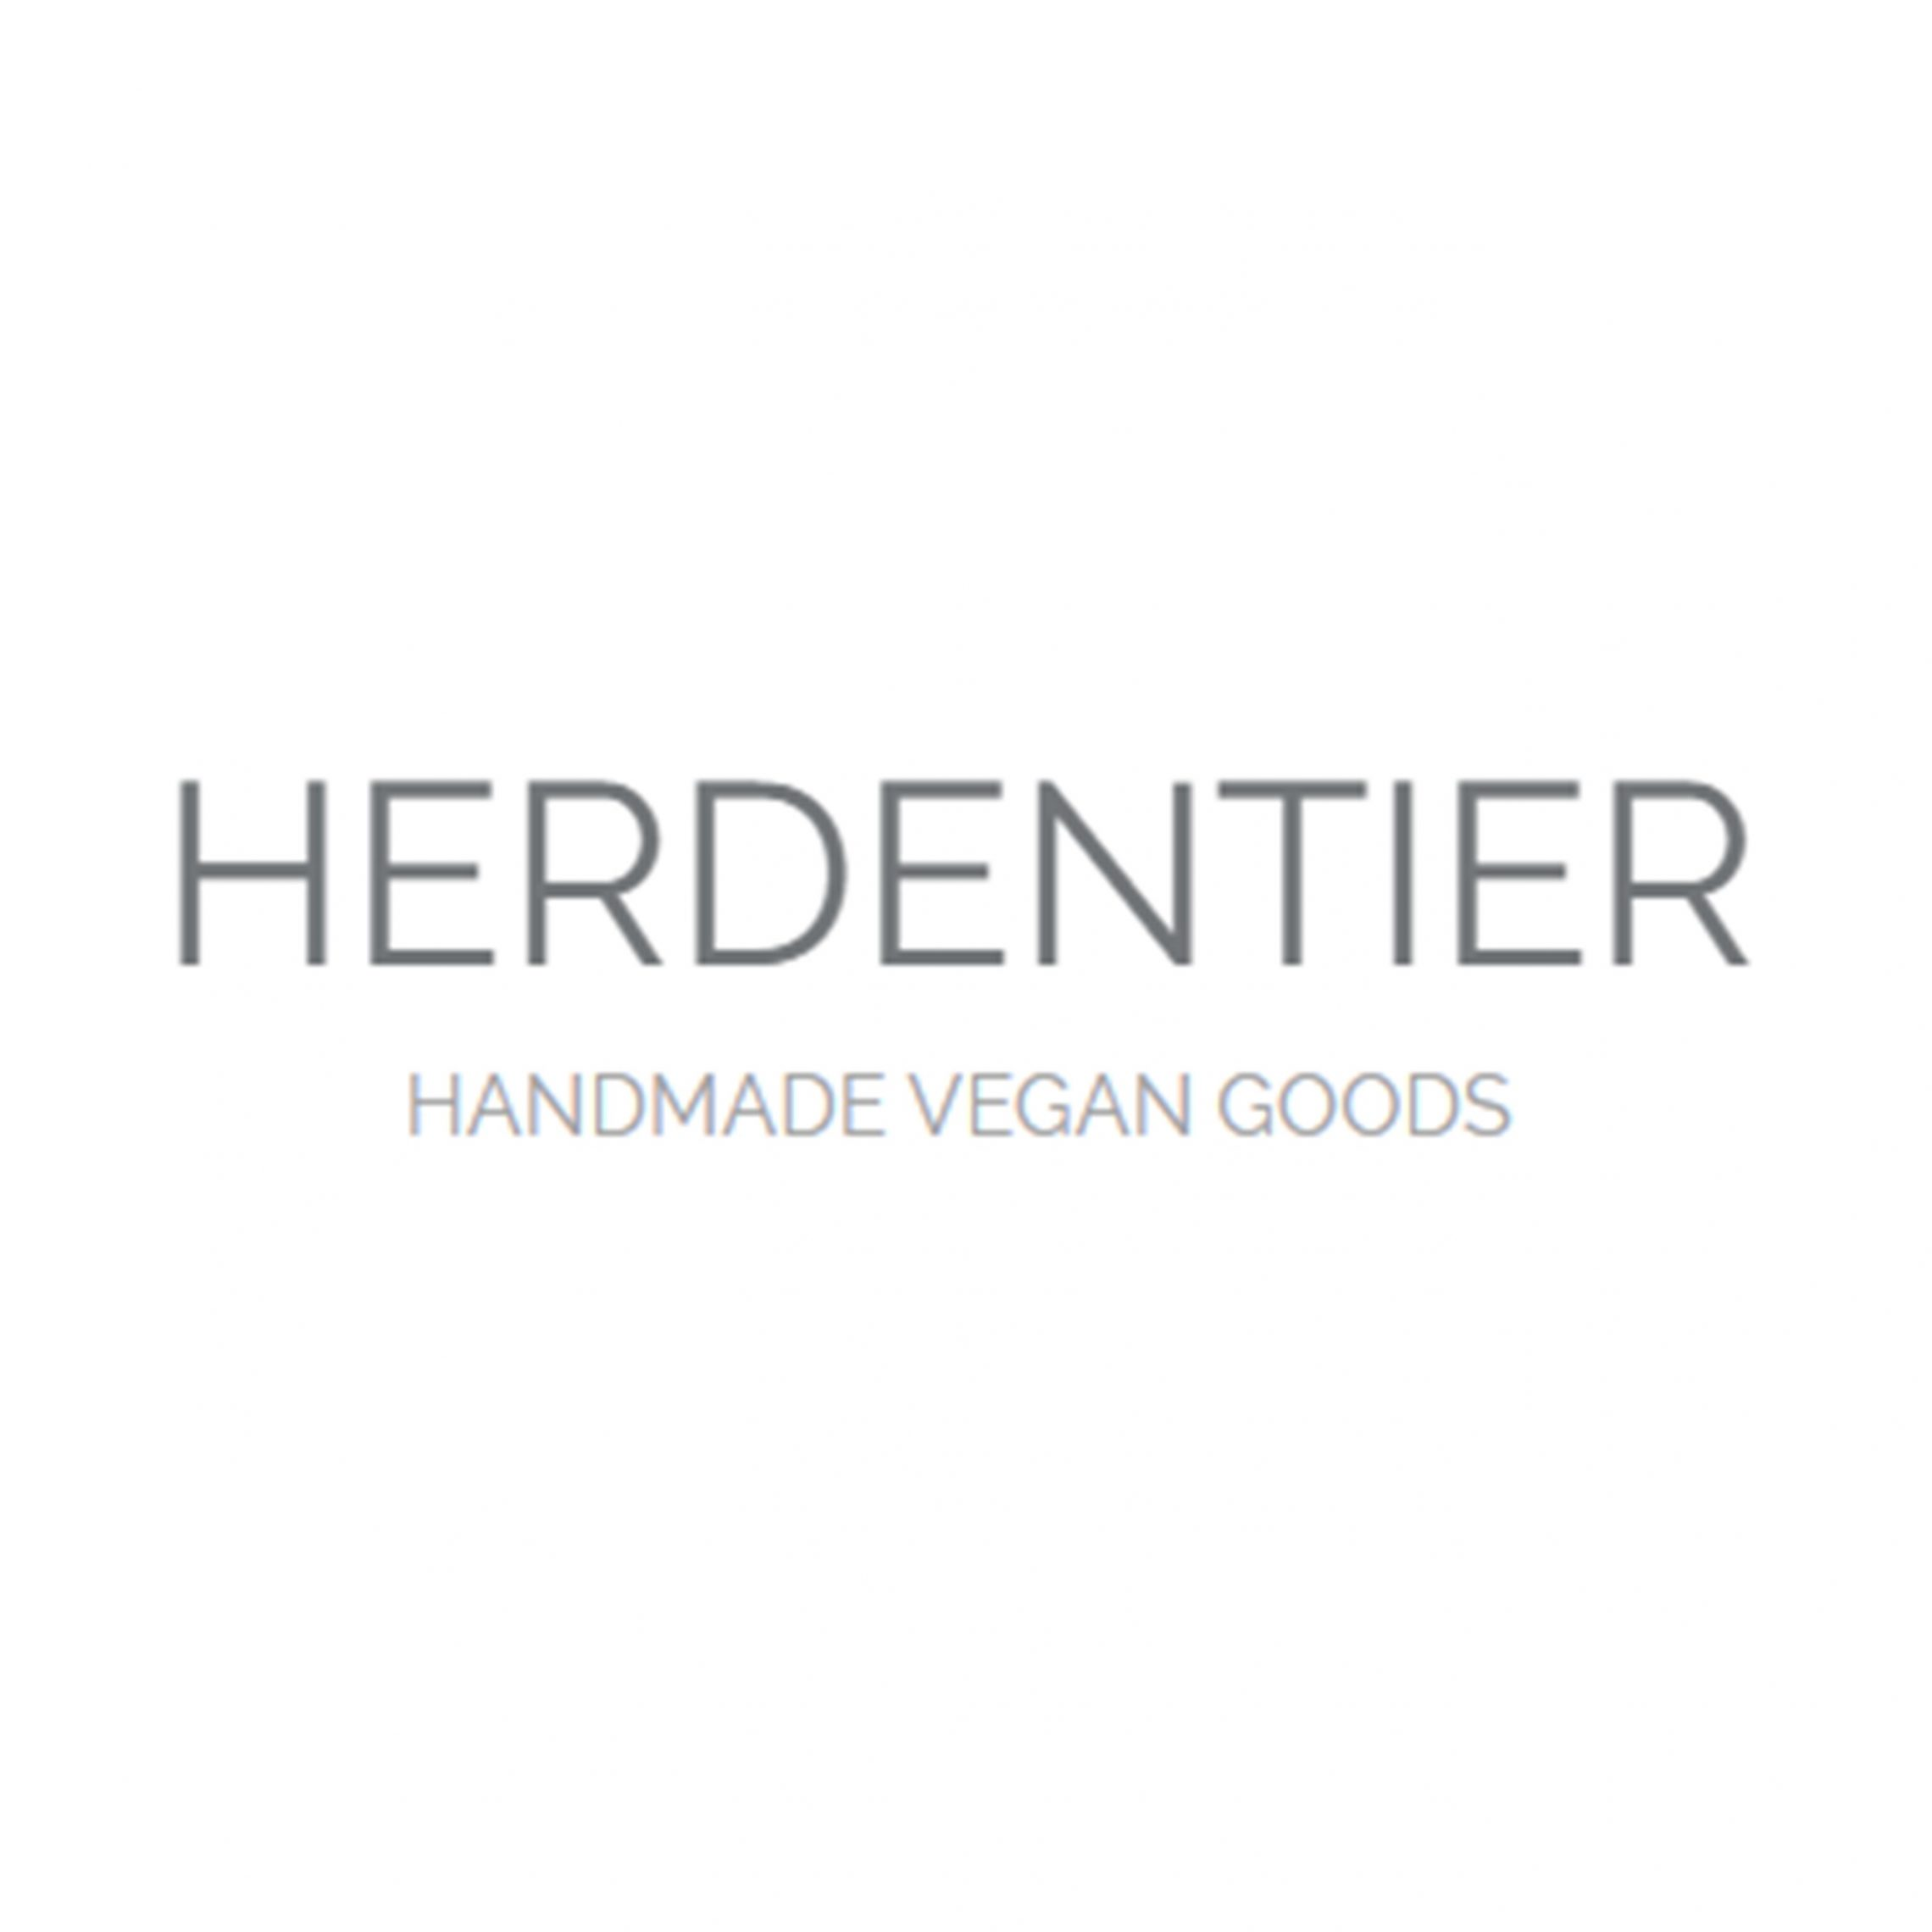 Style Hannover Herdentier Online Shop scaled - Herdentier - ONLINE Shop